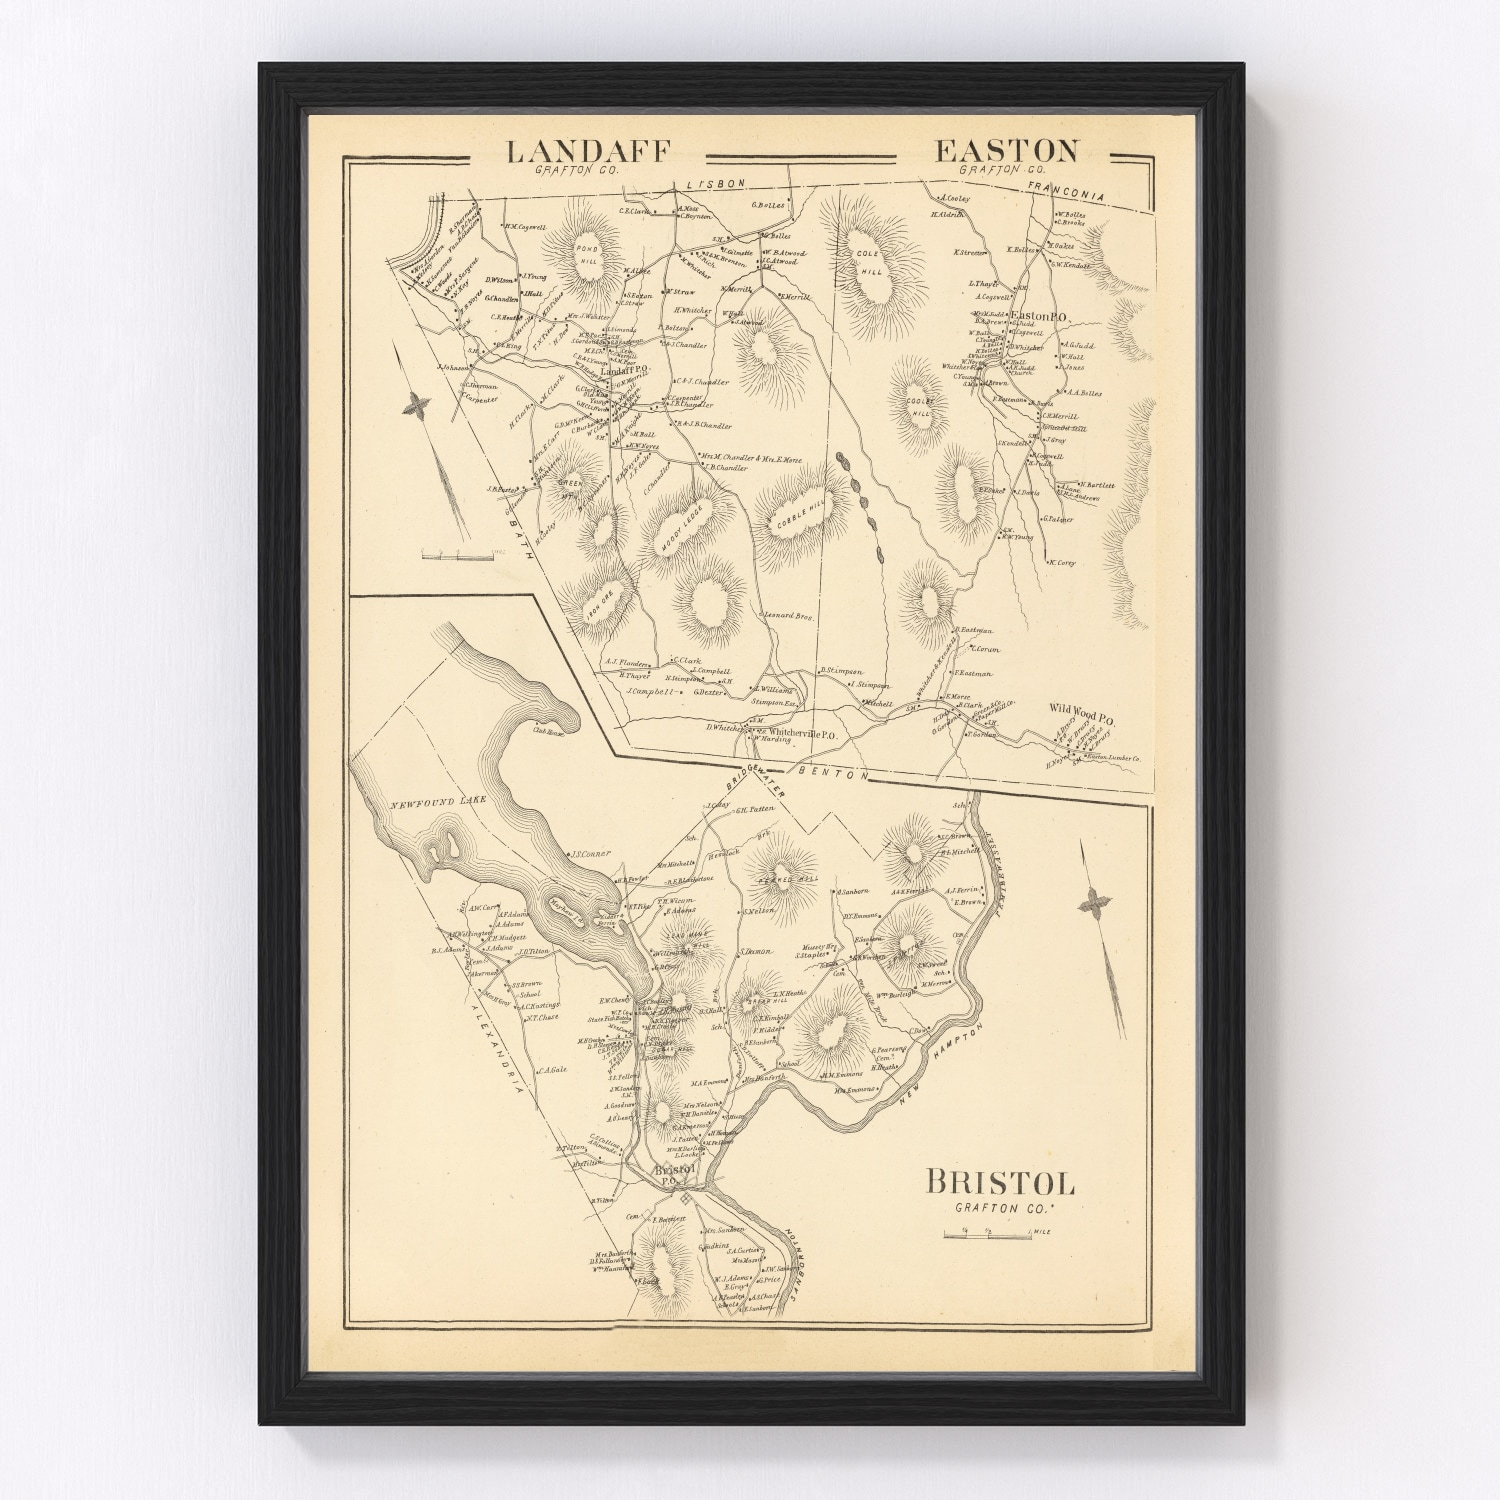 Vintage Map of Easton, New Hampshire 1892